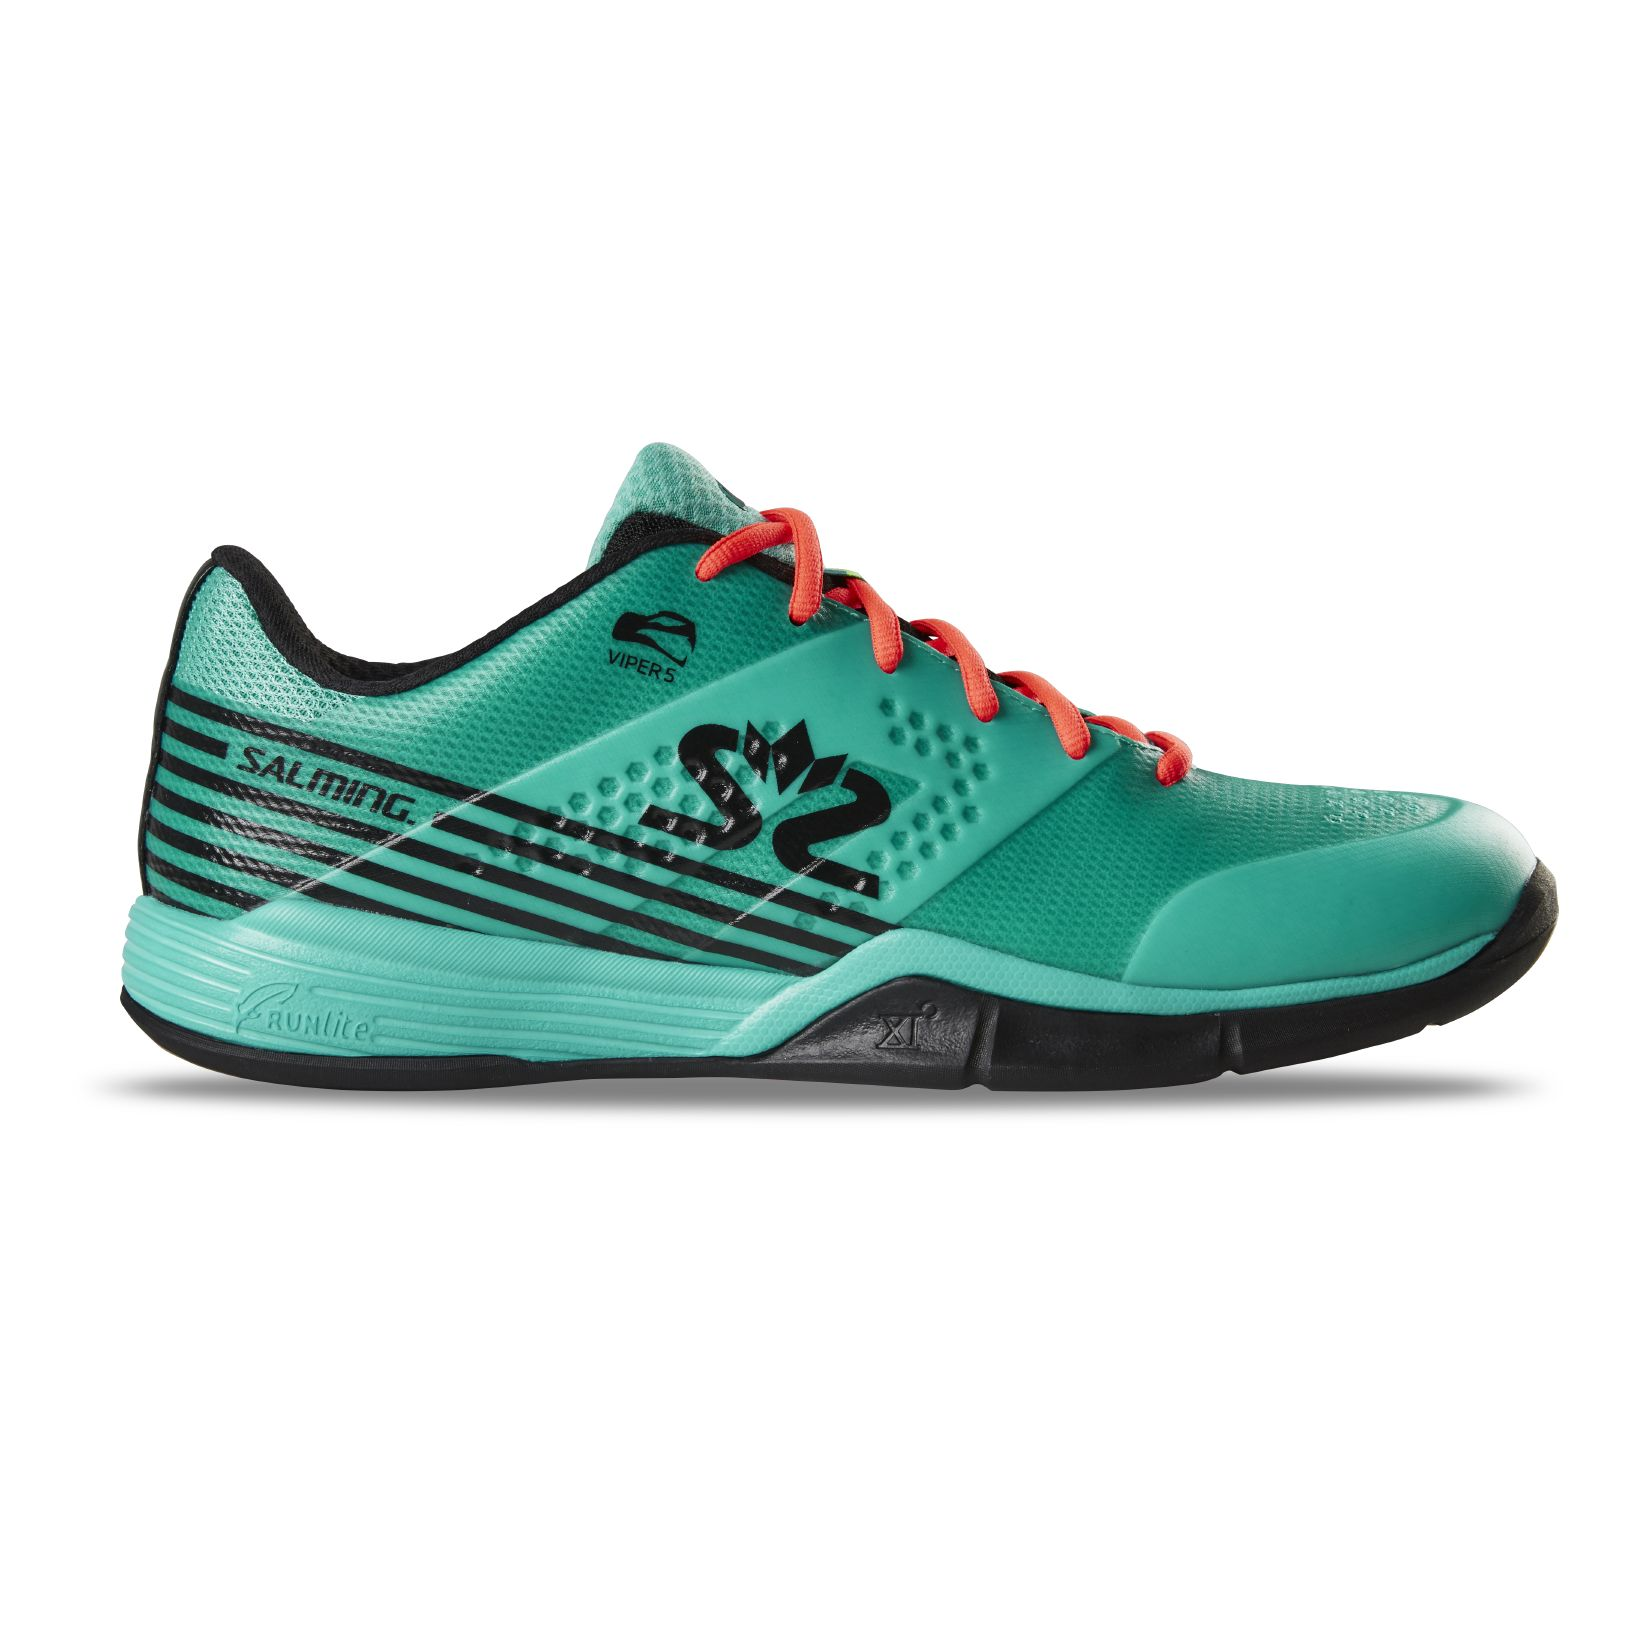 Salming Viper 5 Shoe Men Turquoise/Black 6,5 UK - 40 2/3 EUR - 25,5 cm